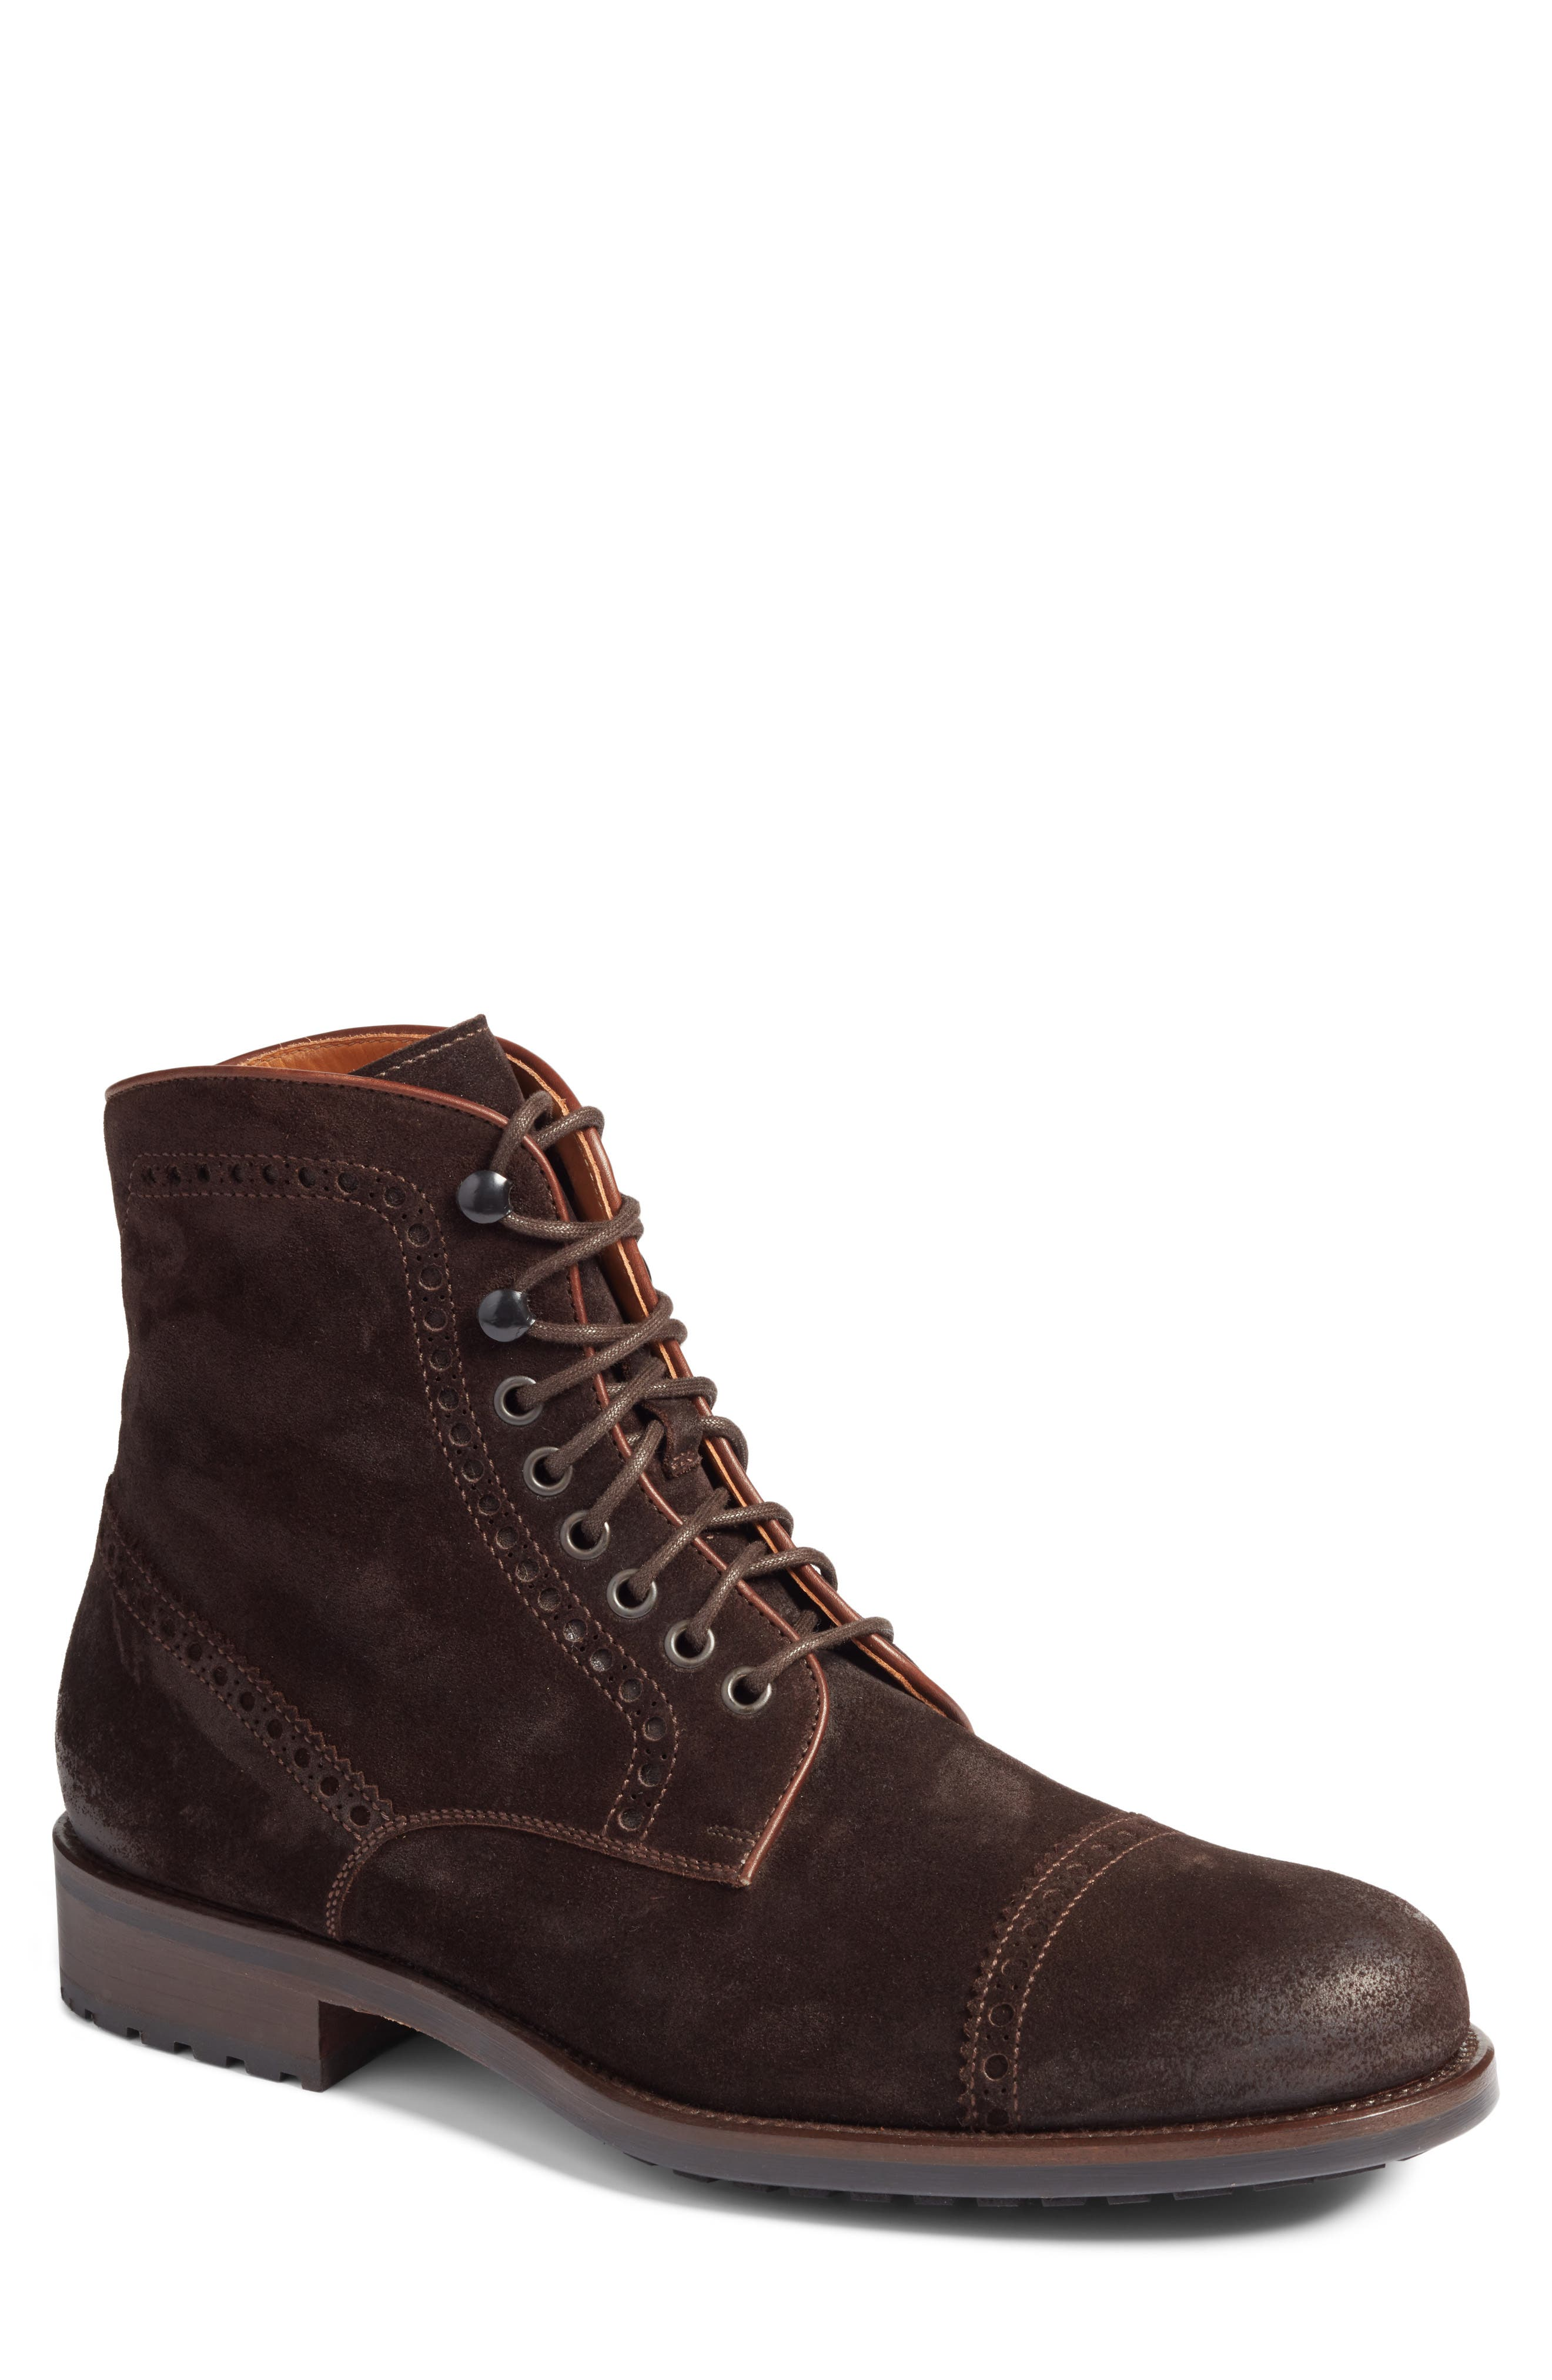 Palmer Cap Toe Boot,                         Main,                         color, Brown Suede